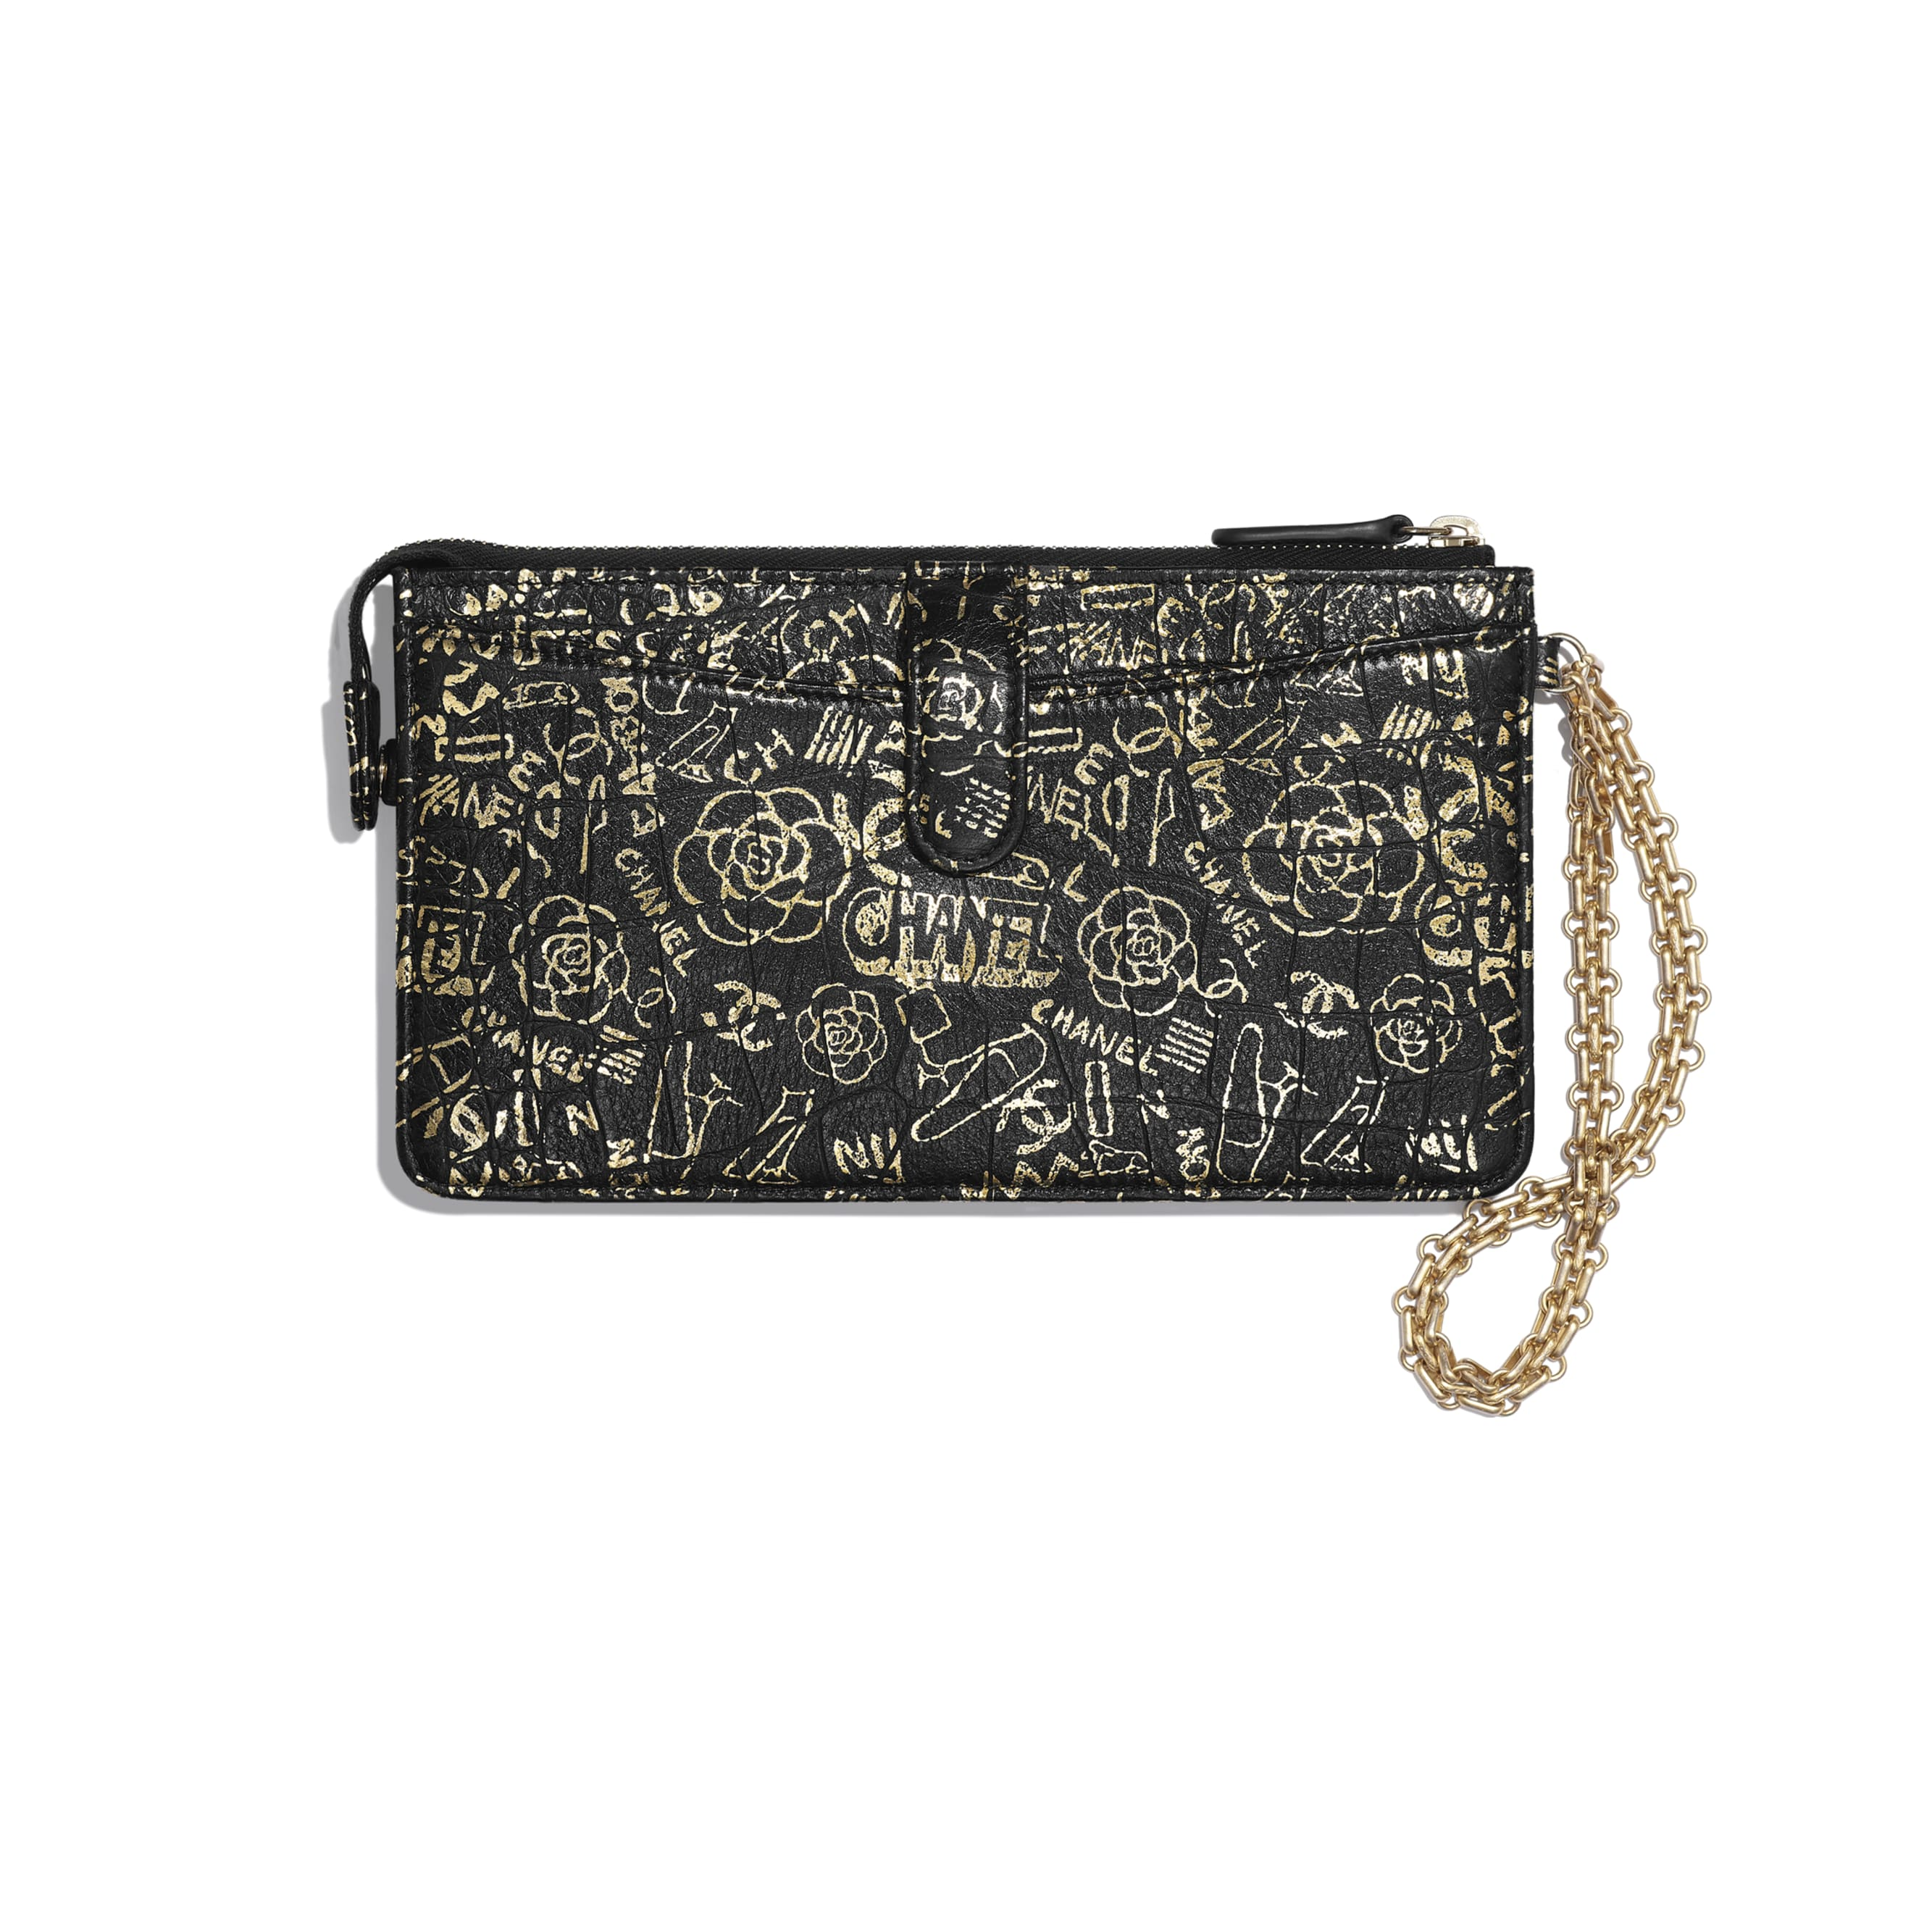 2.55 Pouch With Handle - Black & Gold - Crocodile Embossed Printed Leather & Gold-Tone Metal - Alternative view - see standard sized version